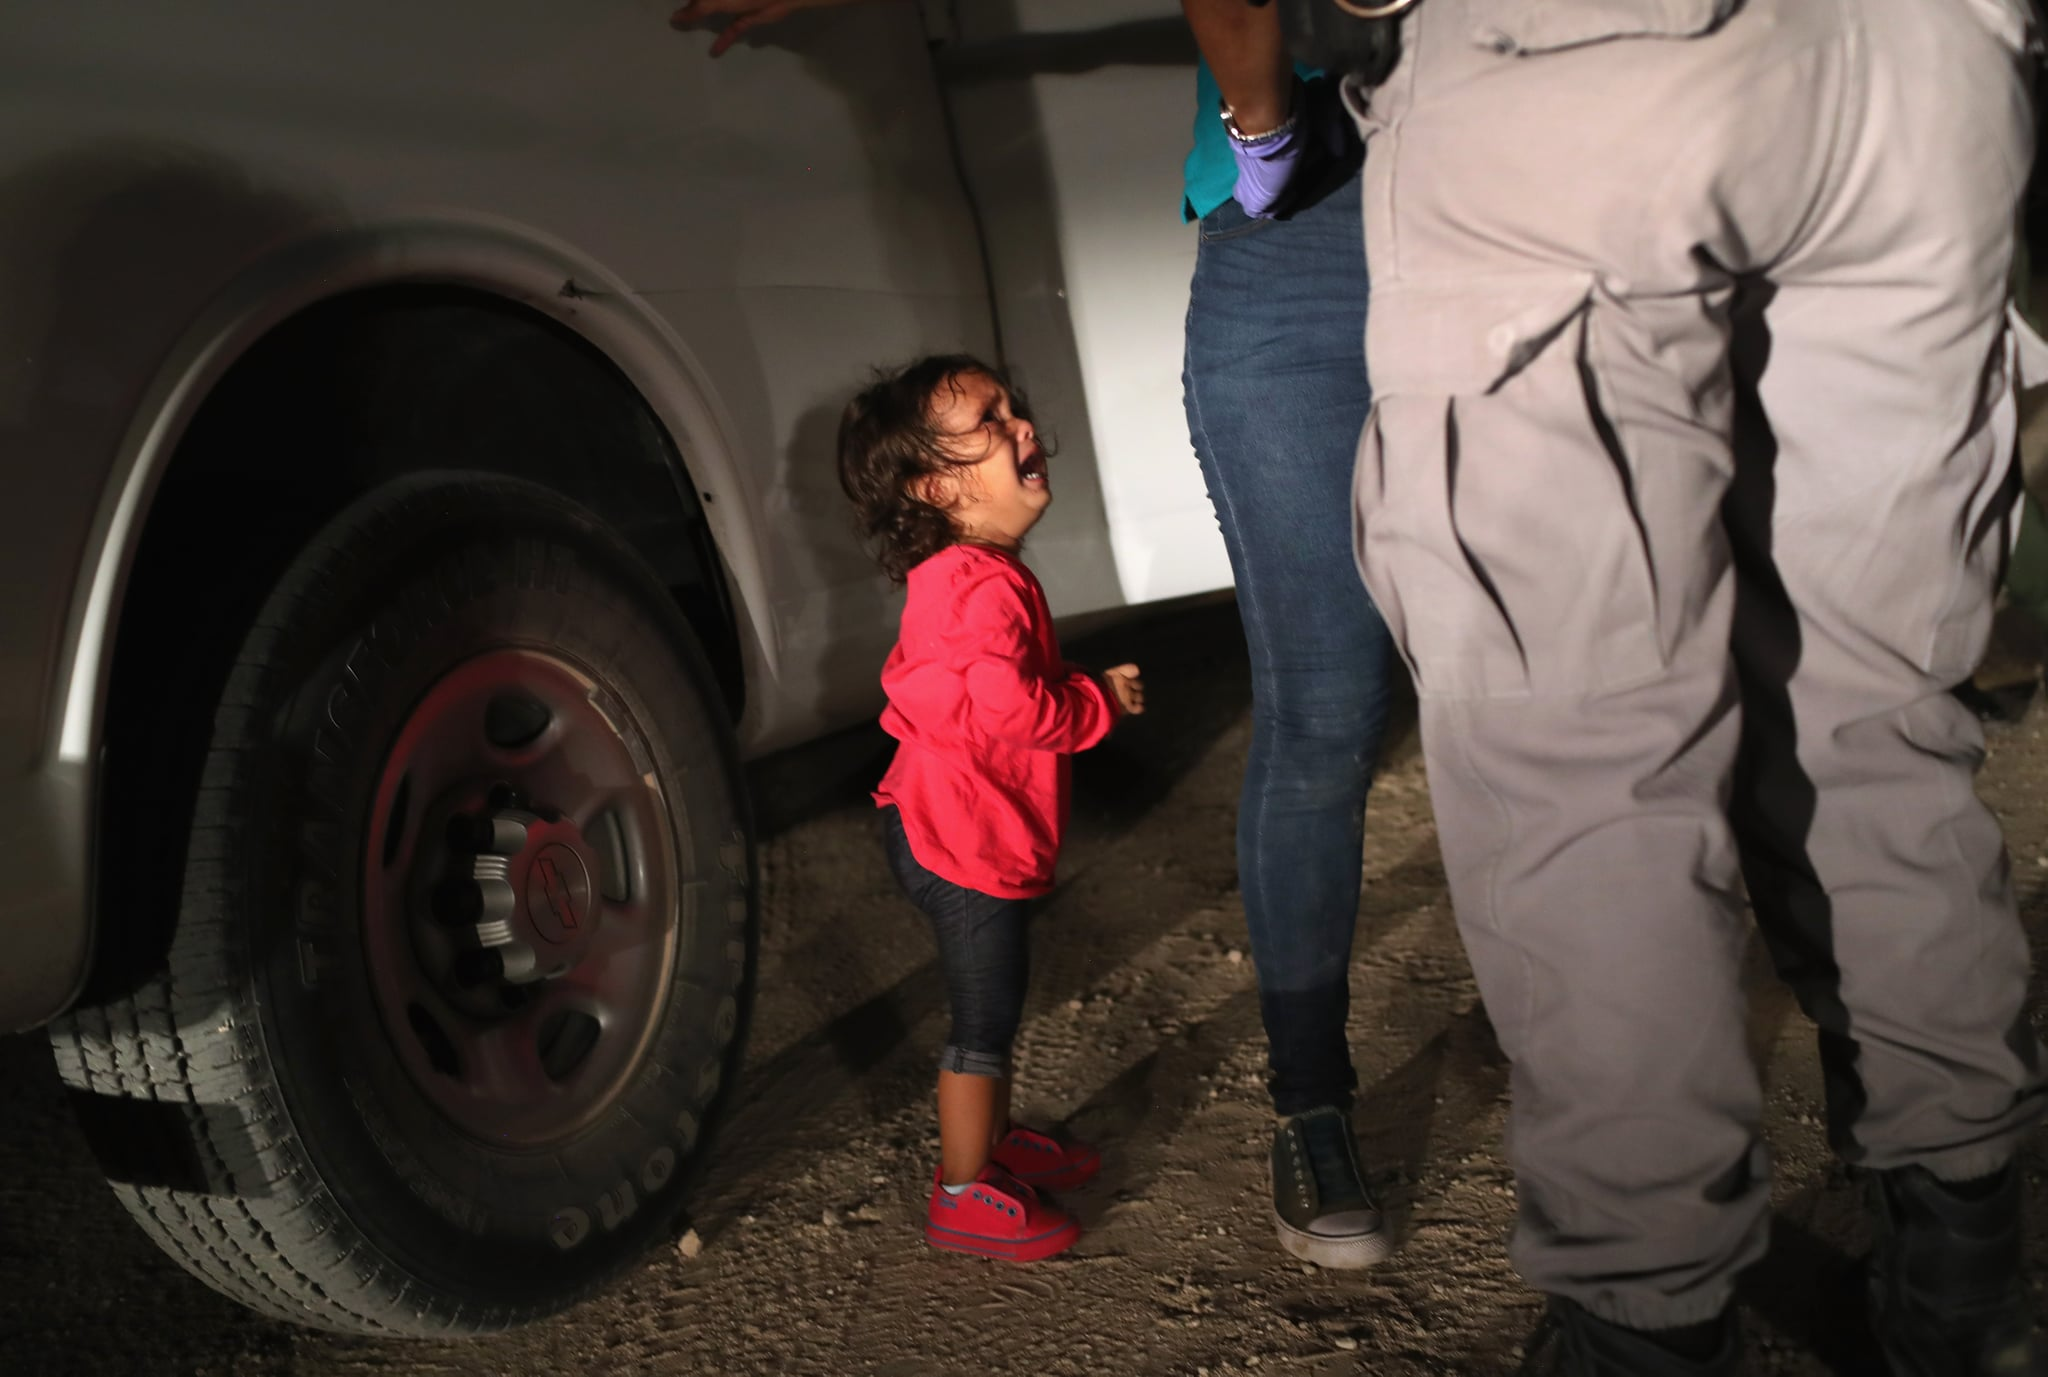 MCALLEN, TX - JUNE 12:  A two-year-old Honduran asylum seeker cries as her mother is searched and detained near the U.S.-Mexico border on June 12, 2018 in McAllen, Texas. The asylum seekers had rafted across the Rio Grande from Mexico and were detained by U.S. Border Patrol agents before being sent to a processing center for possible separation. Customs and Border Protection (CBP) is executing the Trump administration's